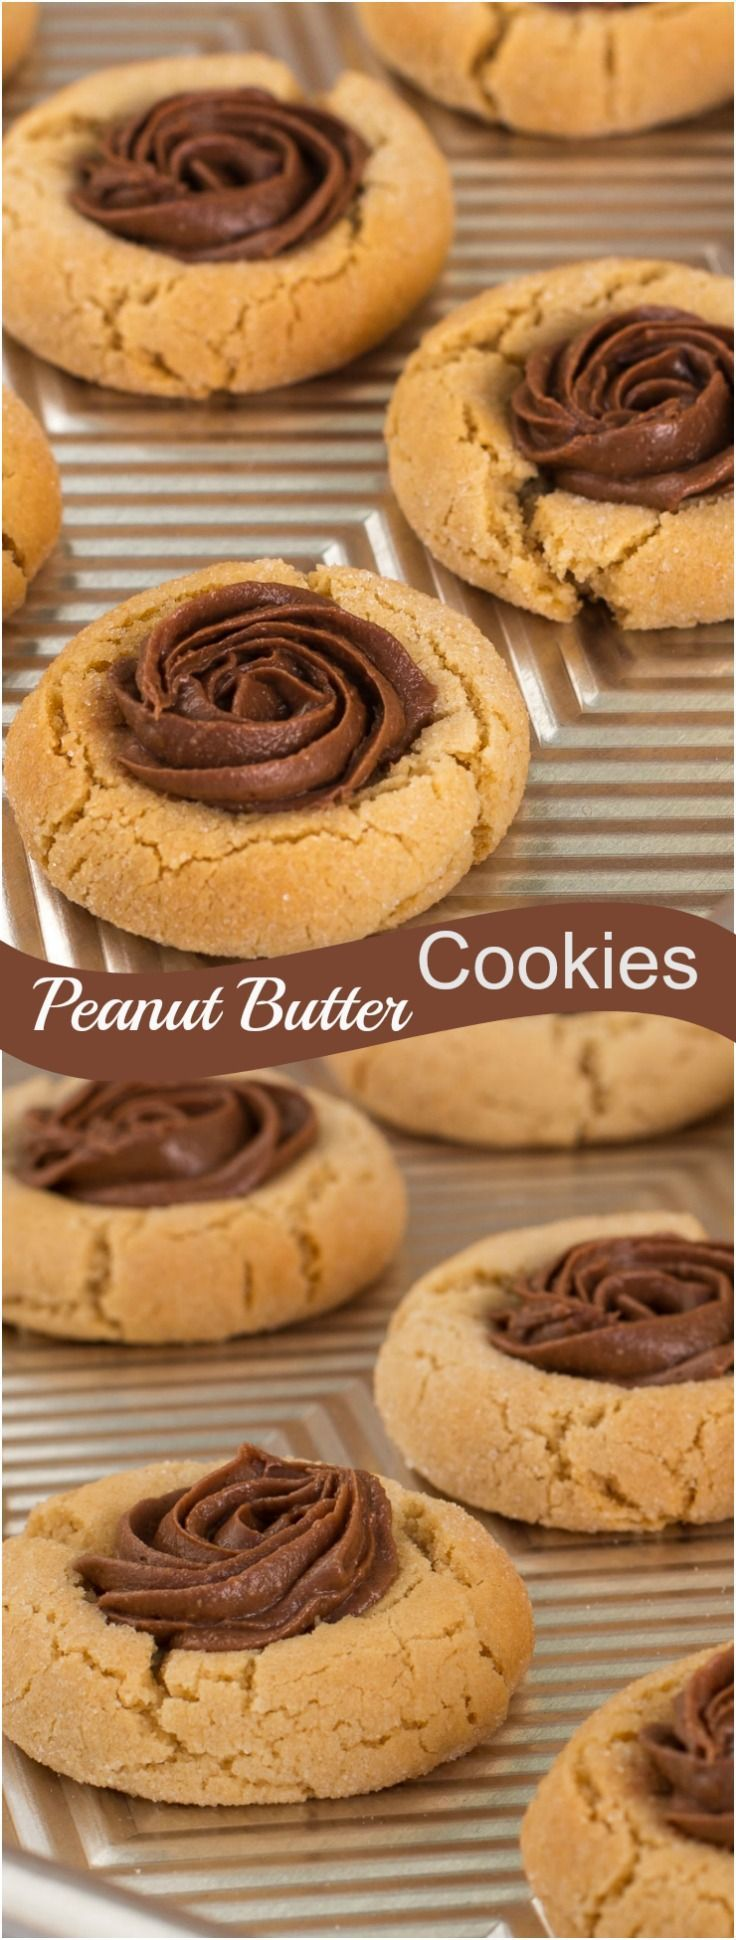 Peanut Butter Thumbprint Cookies with Reese Chocolate spread. Best Ever peanut butter cookie recipe!